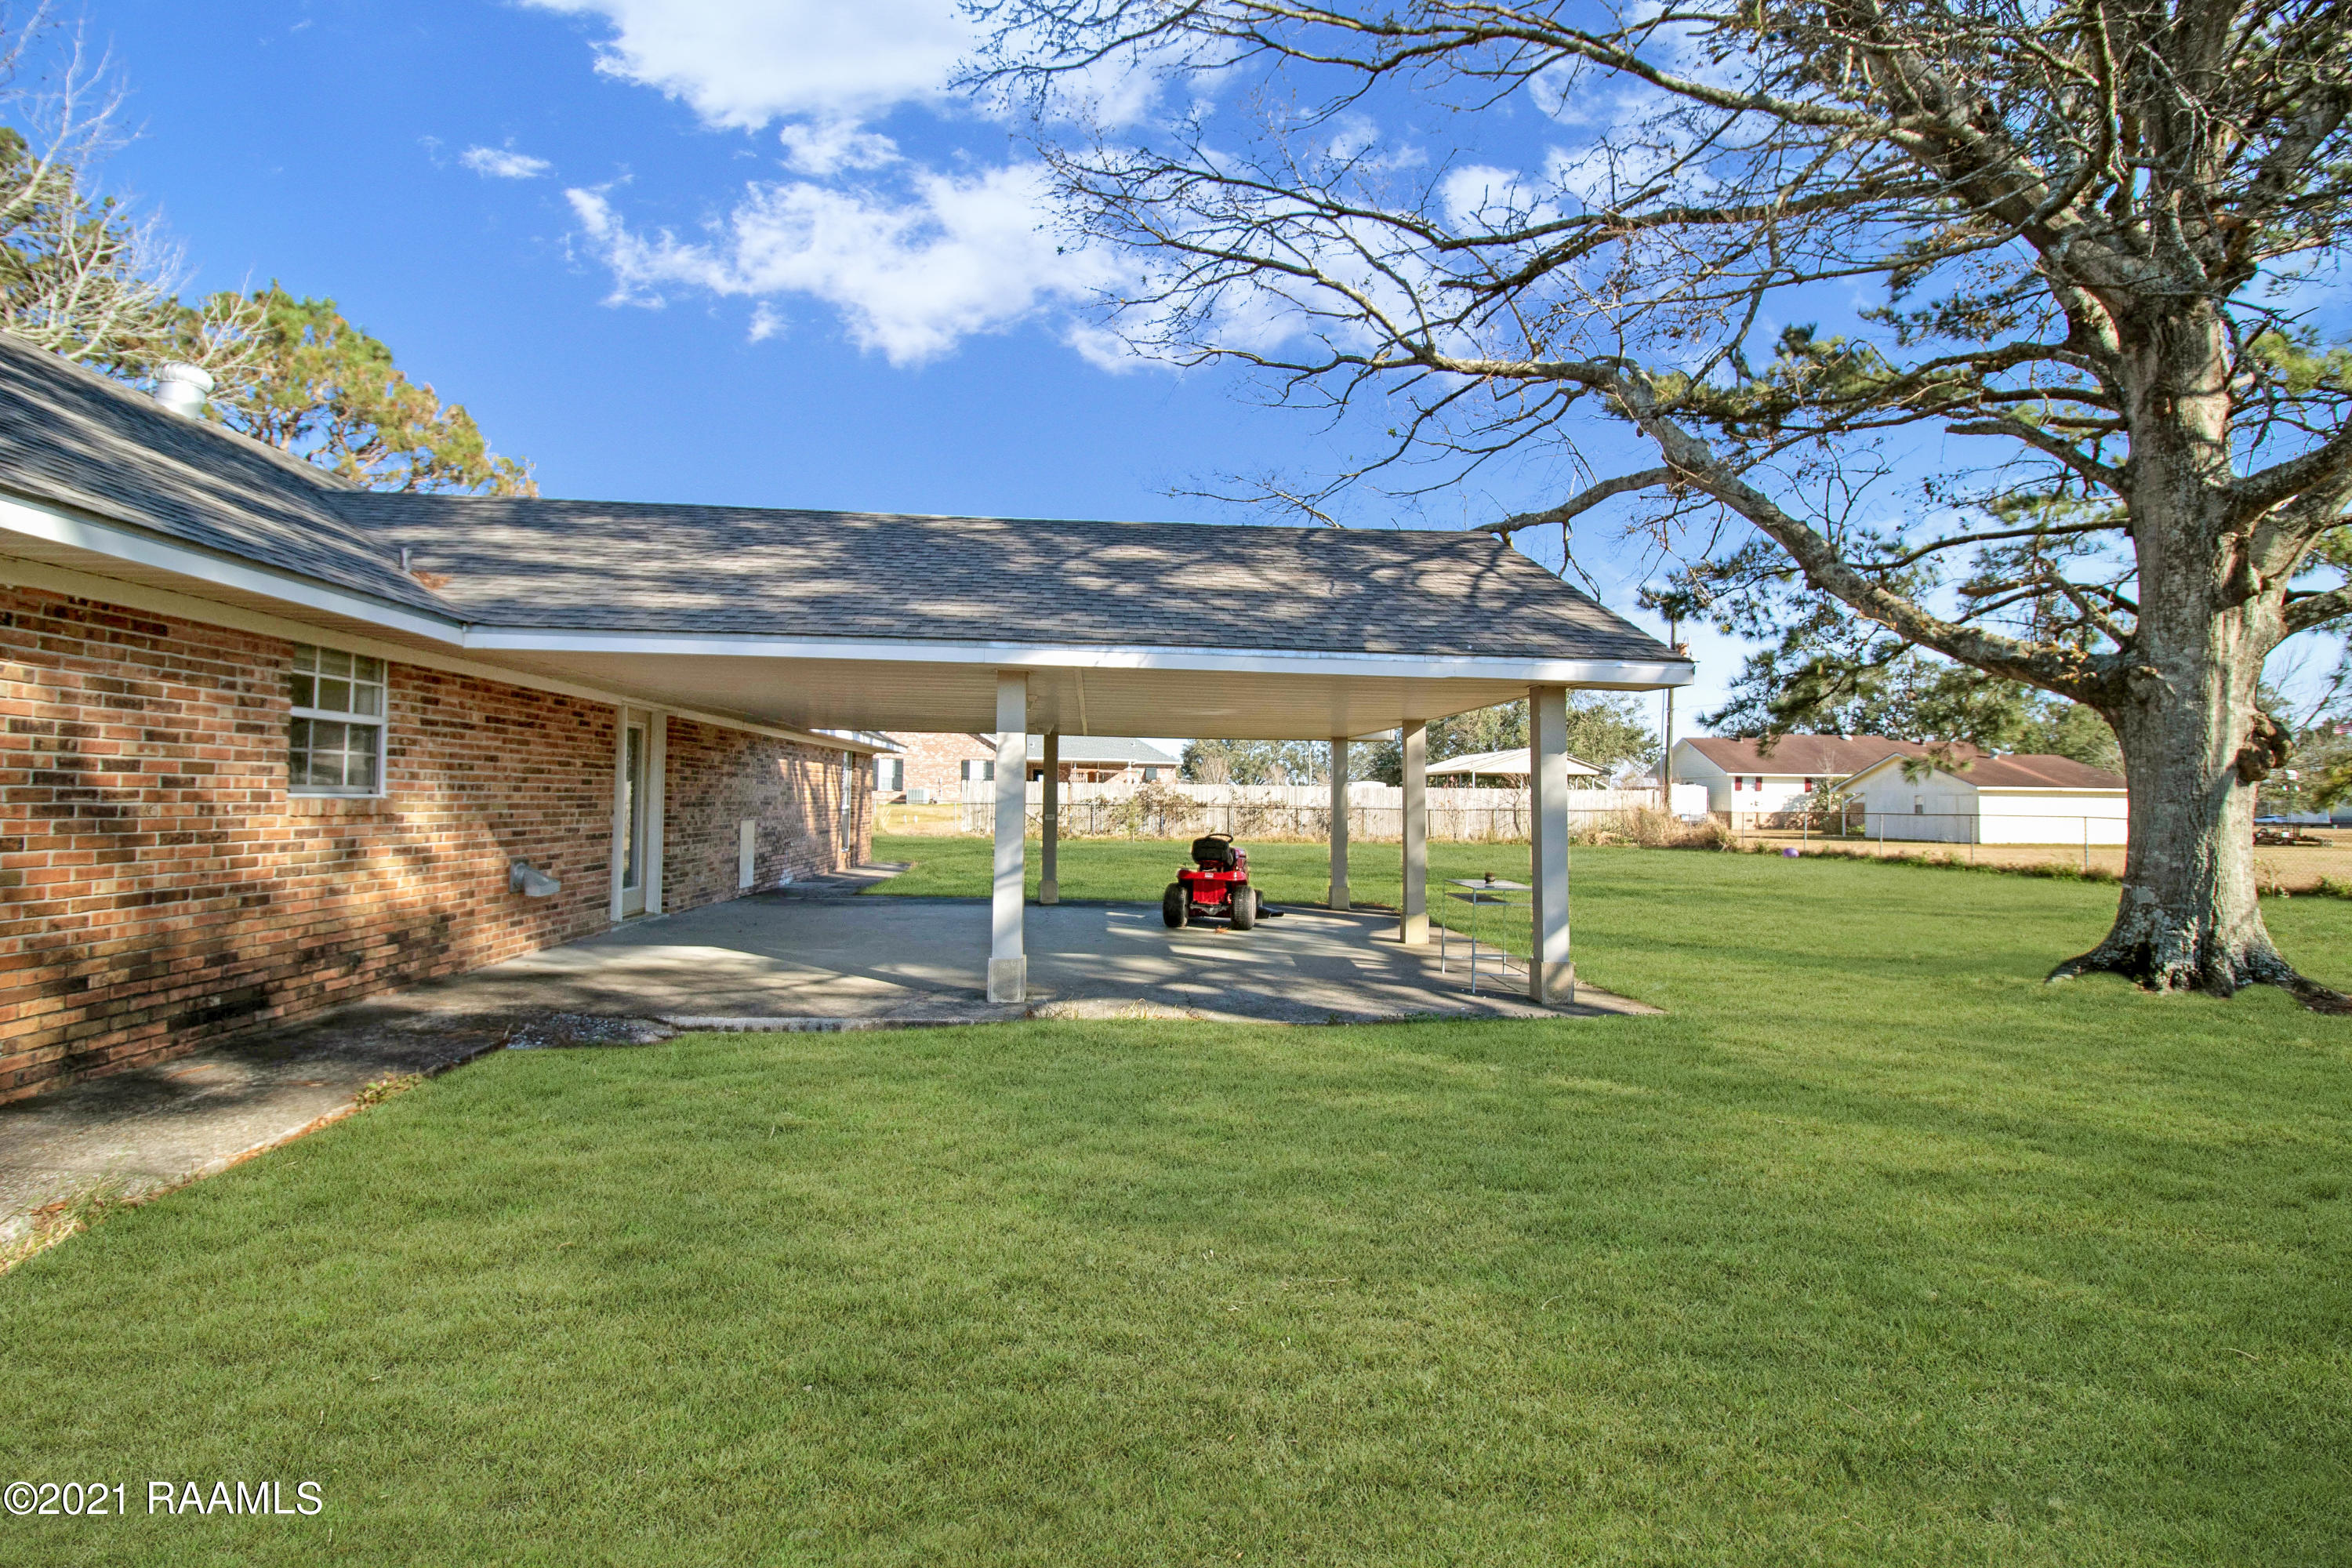 3623 Pickett Road, Erath, LA 70533 Photo #2